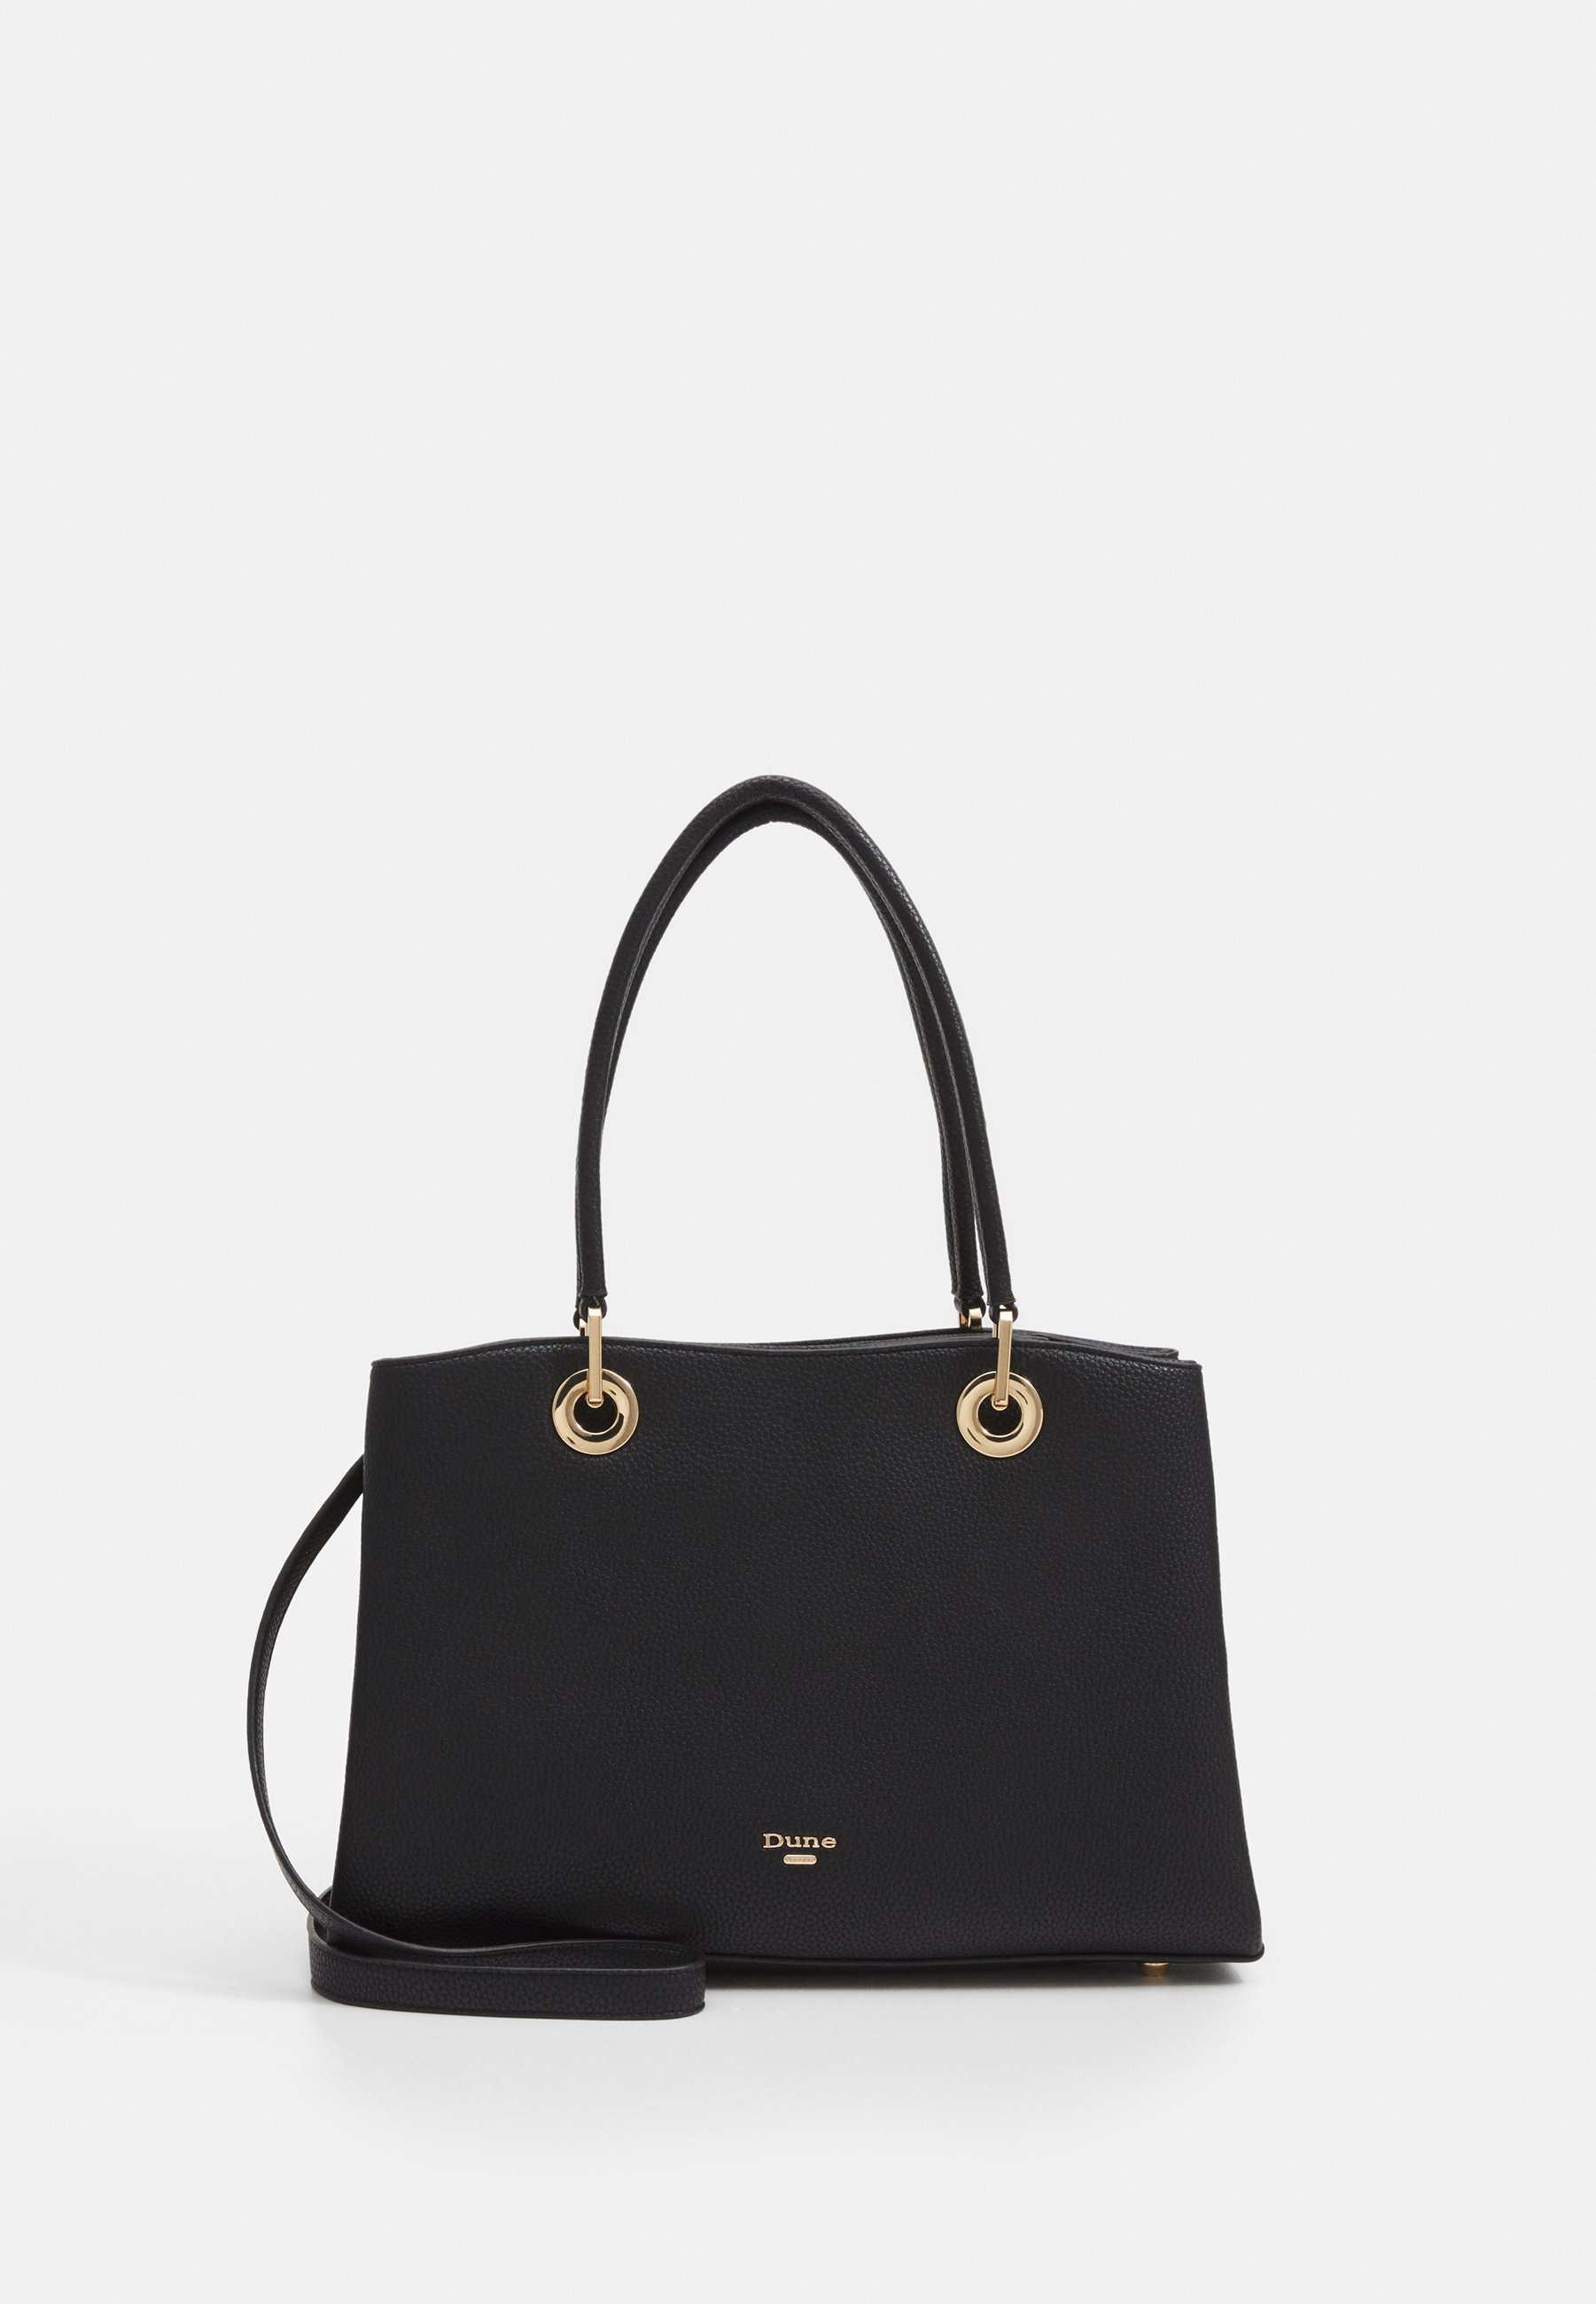 Dune London Darys - Shopping Bag Black/schwarz